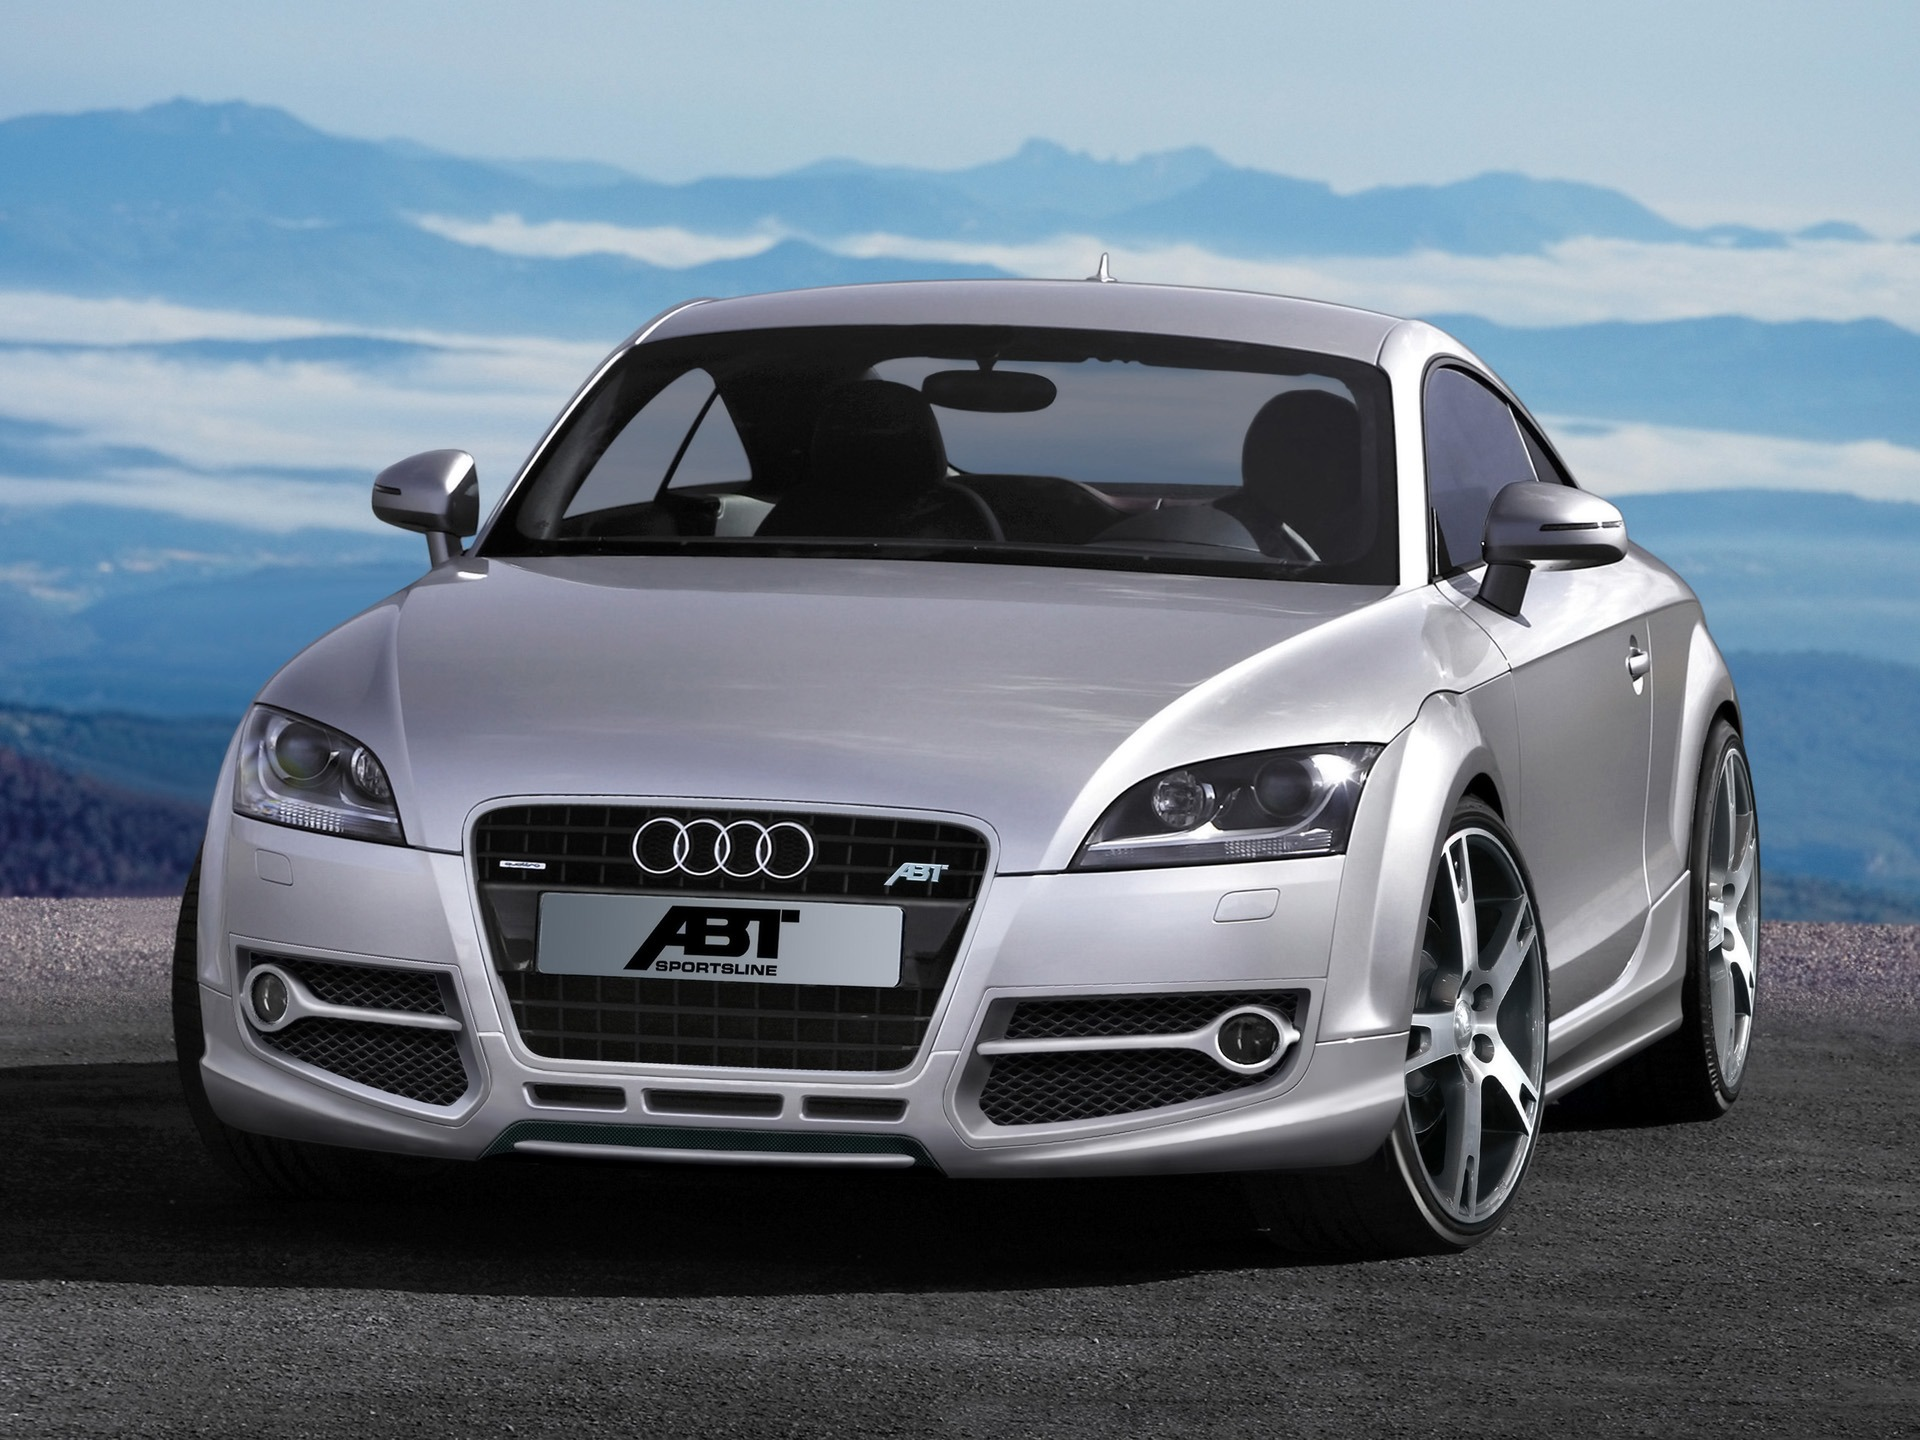 Audi Car Wallpapers Free Download